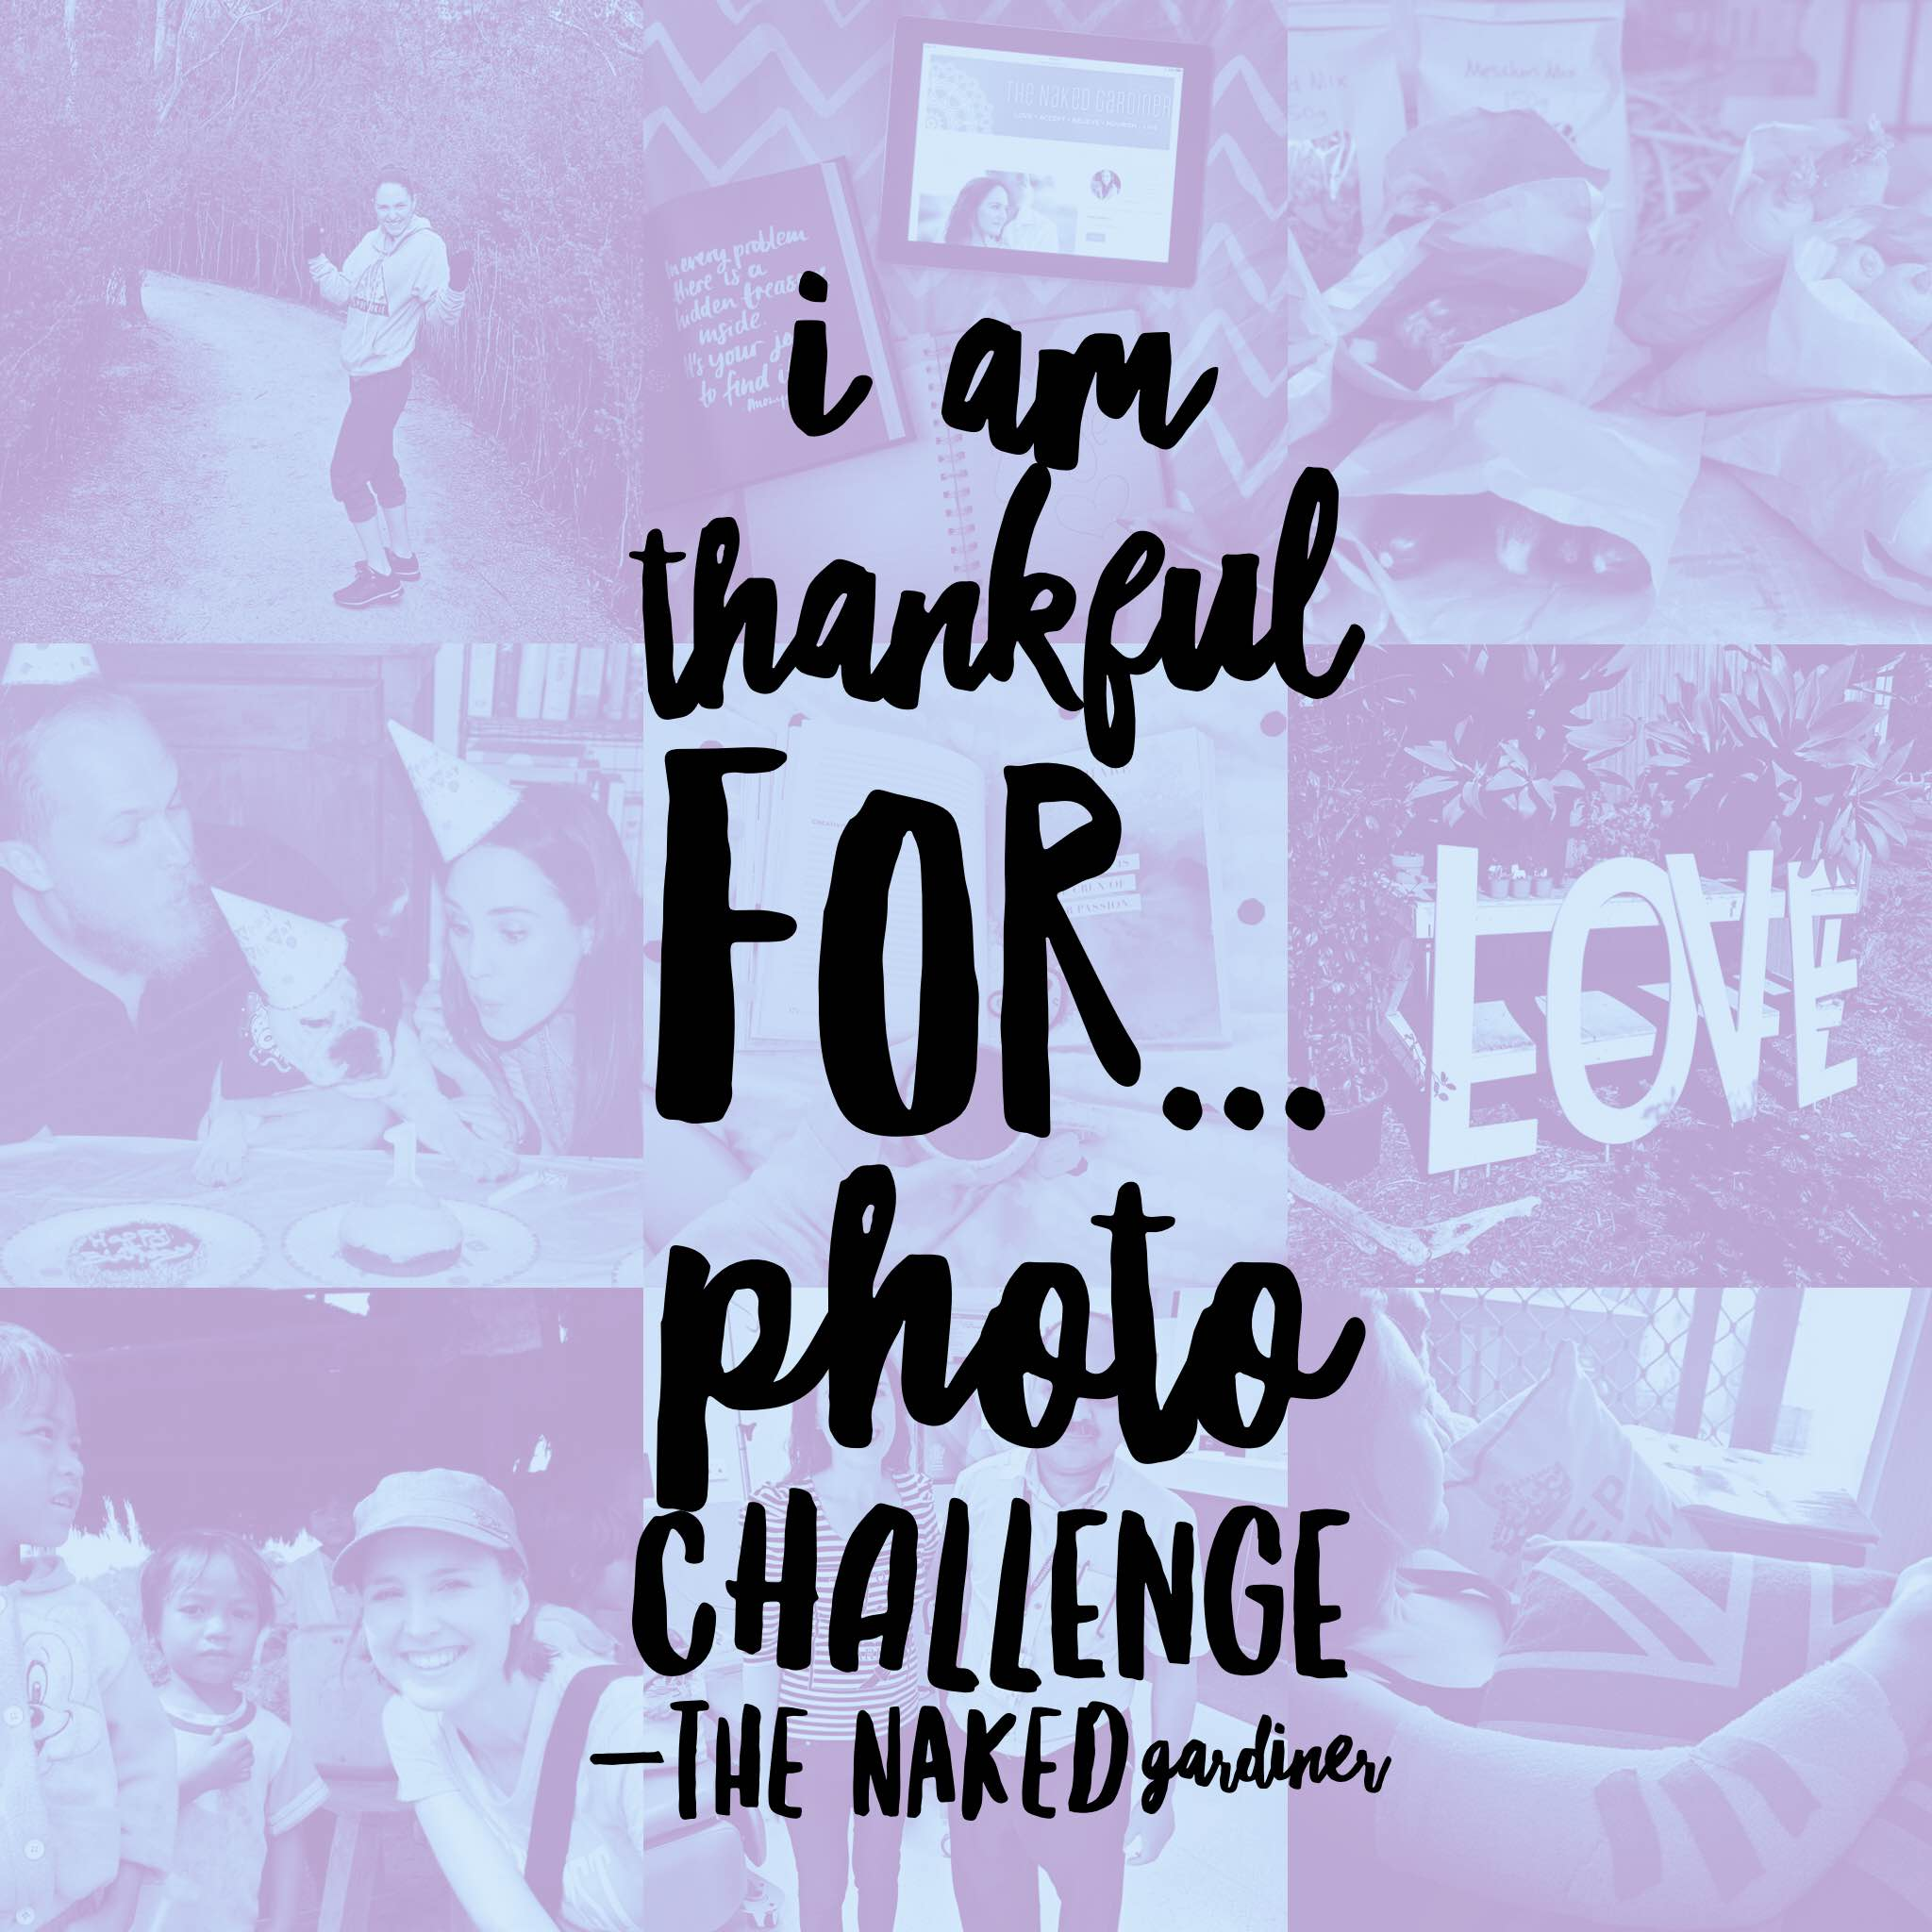 thankful-thursdays-photo-challenge-the-naked-gardiner